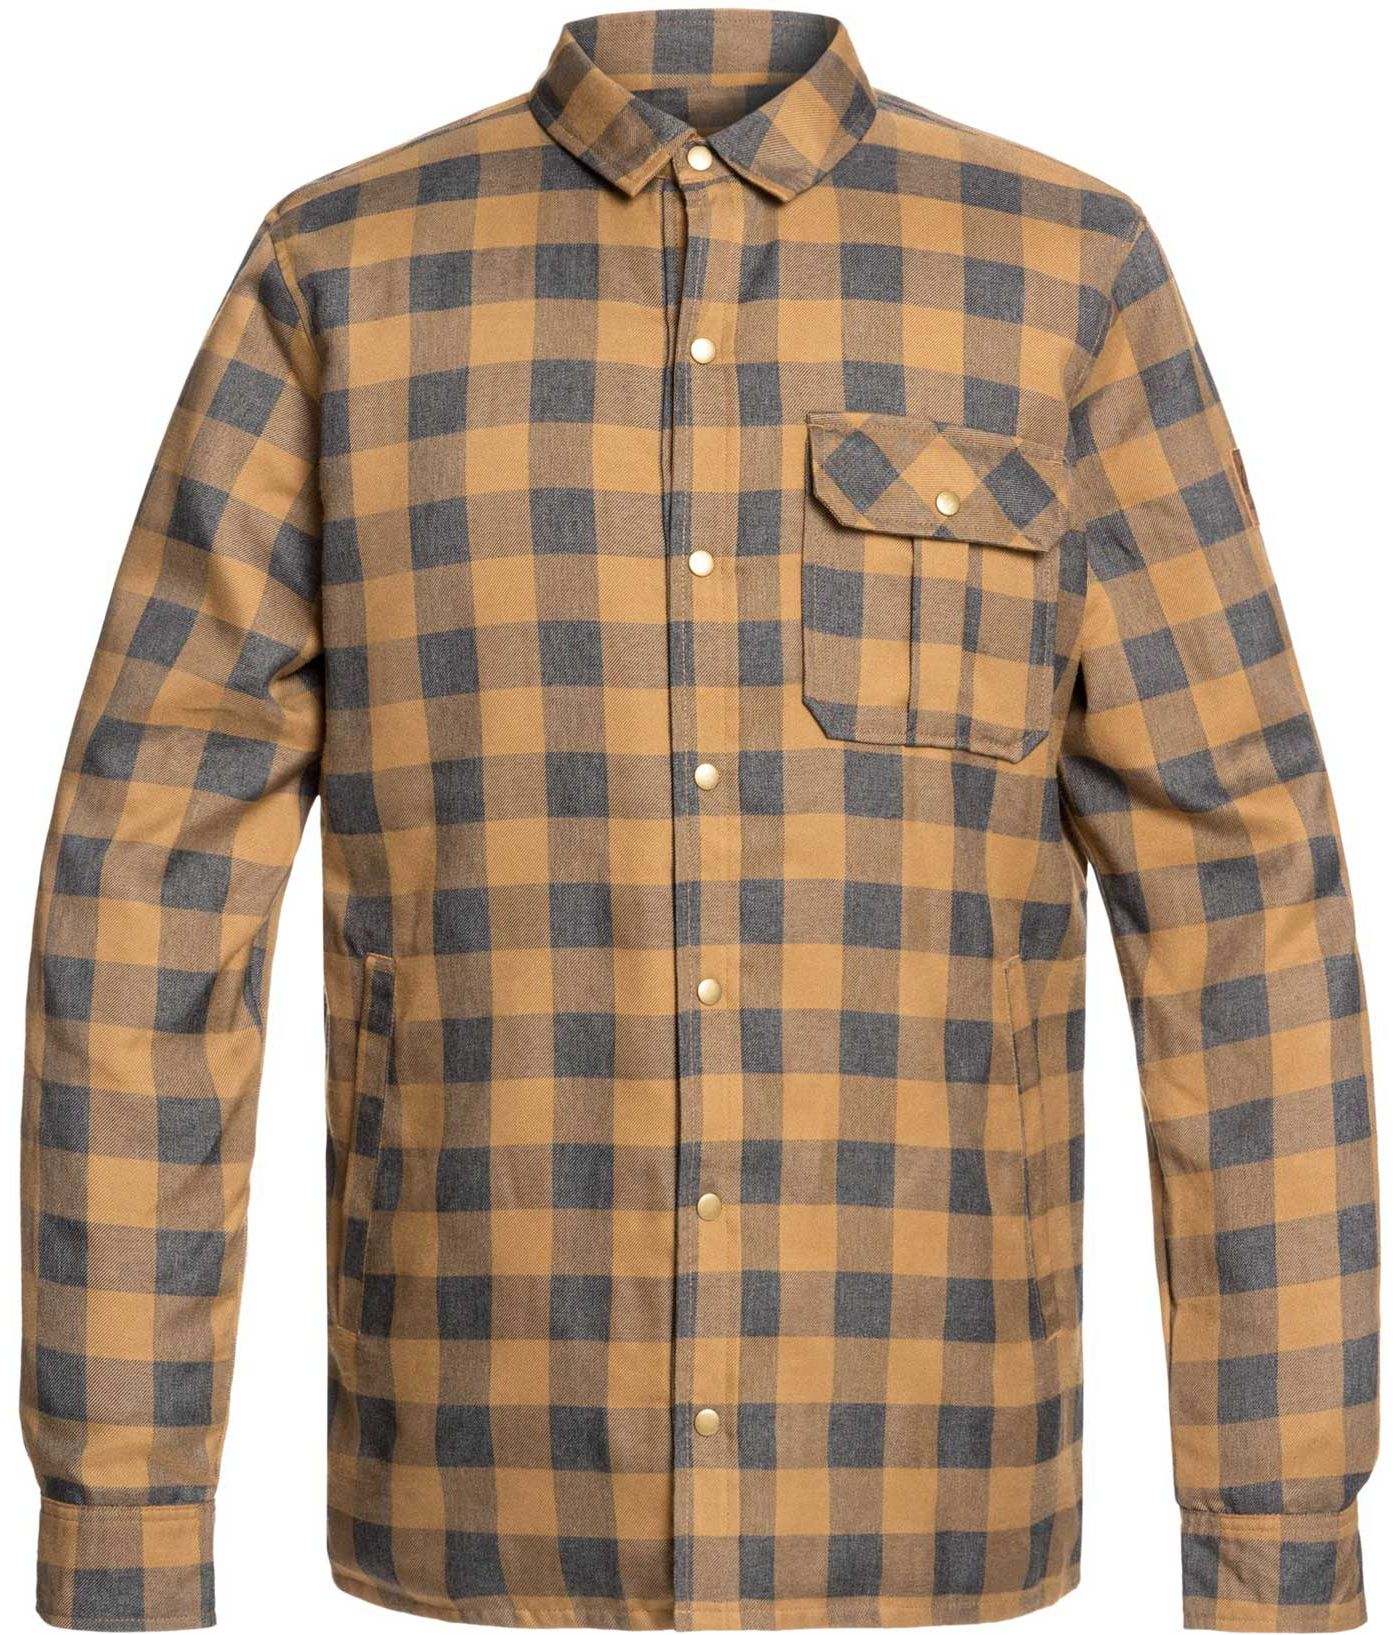 Quiksilver Men's Wildcard Reversible Flannel Shirt